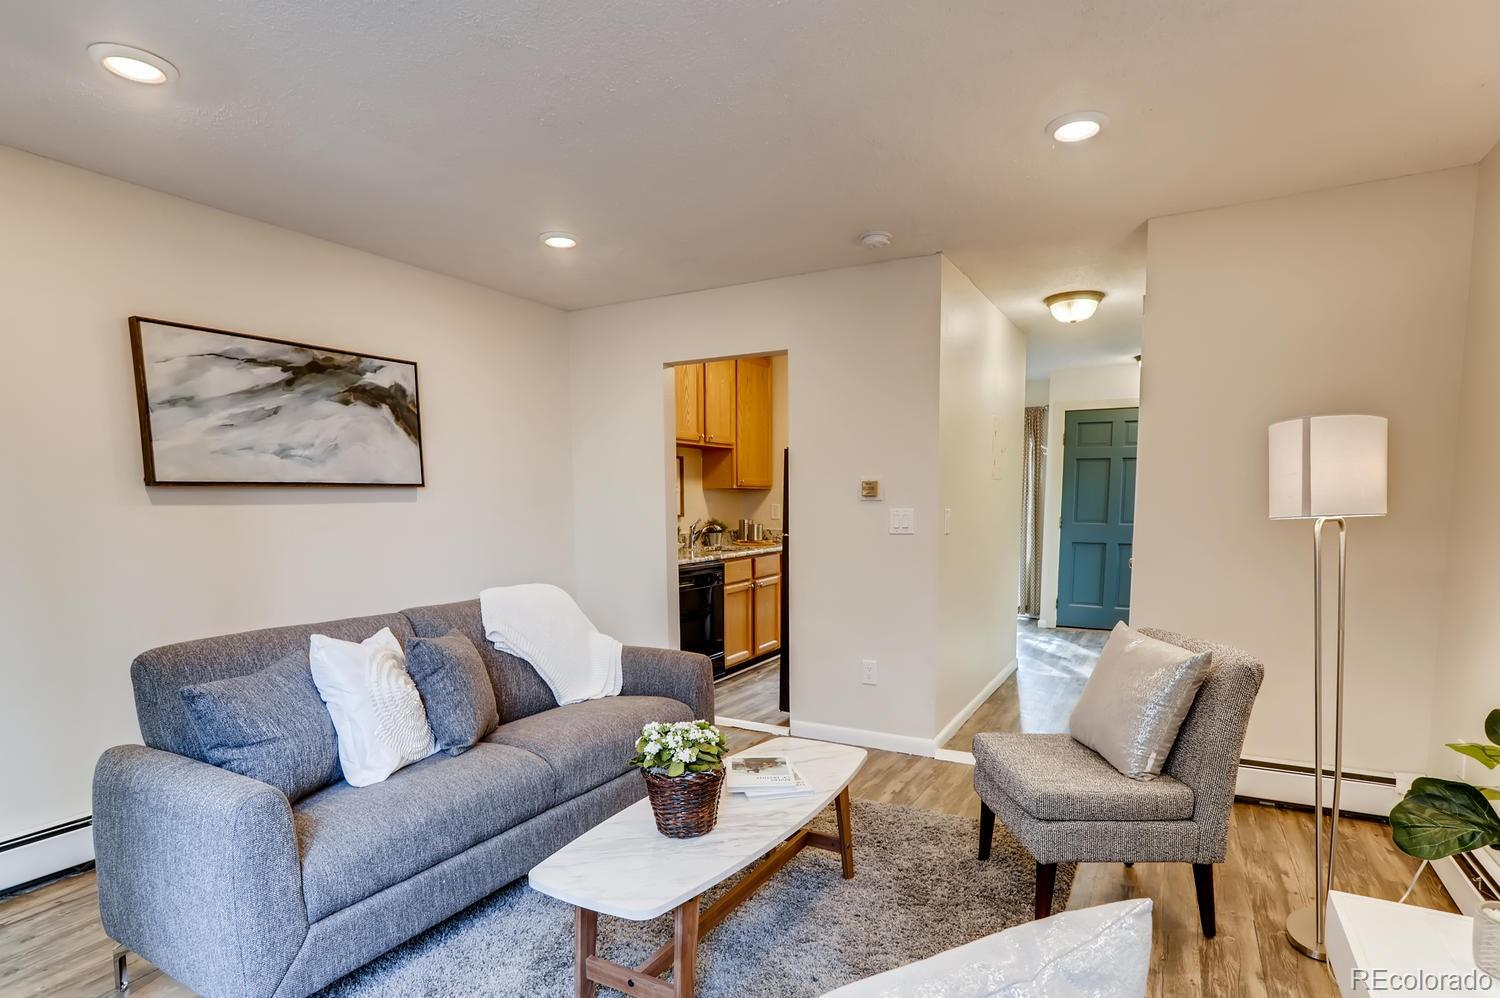 MLS# 4298987 - 5 - 350 Arapahoe Avenue #21, Boulder, CO 80302